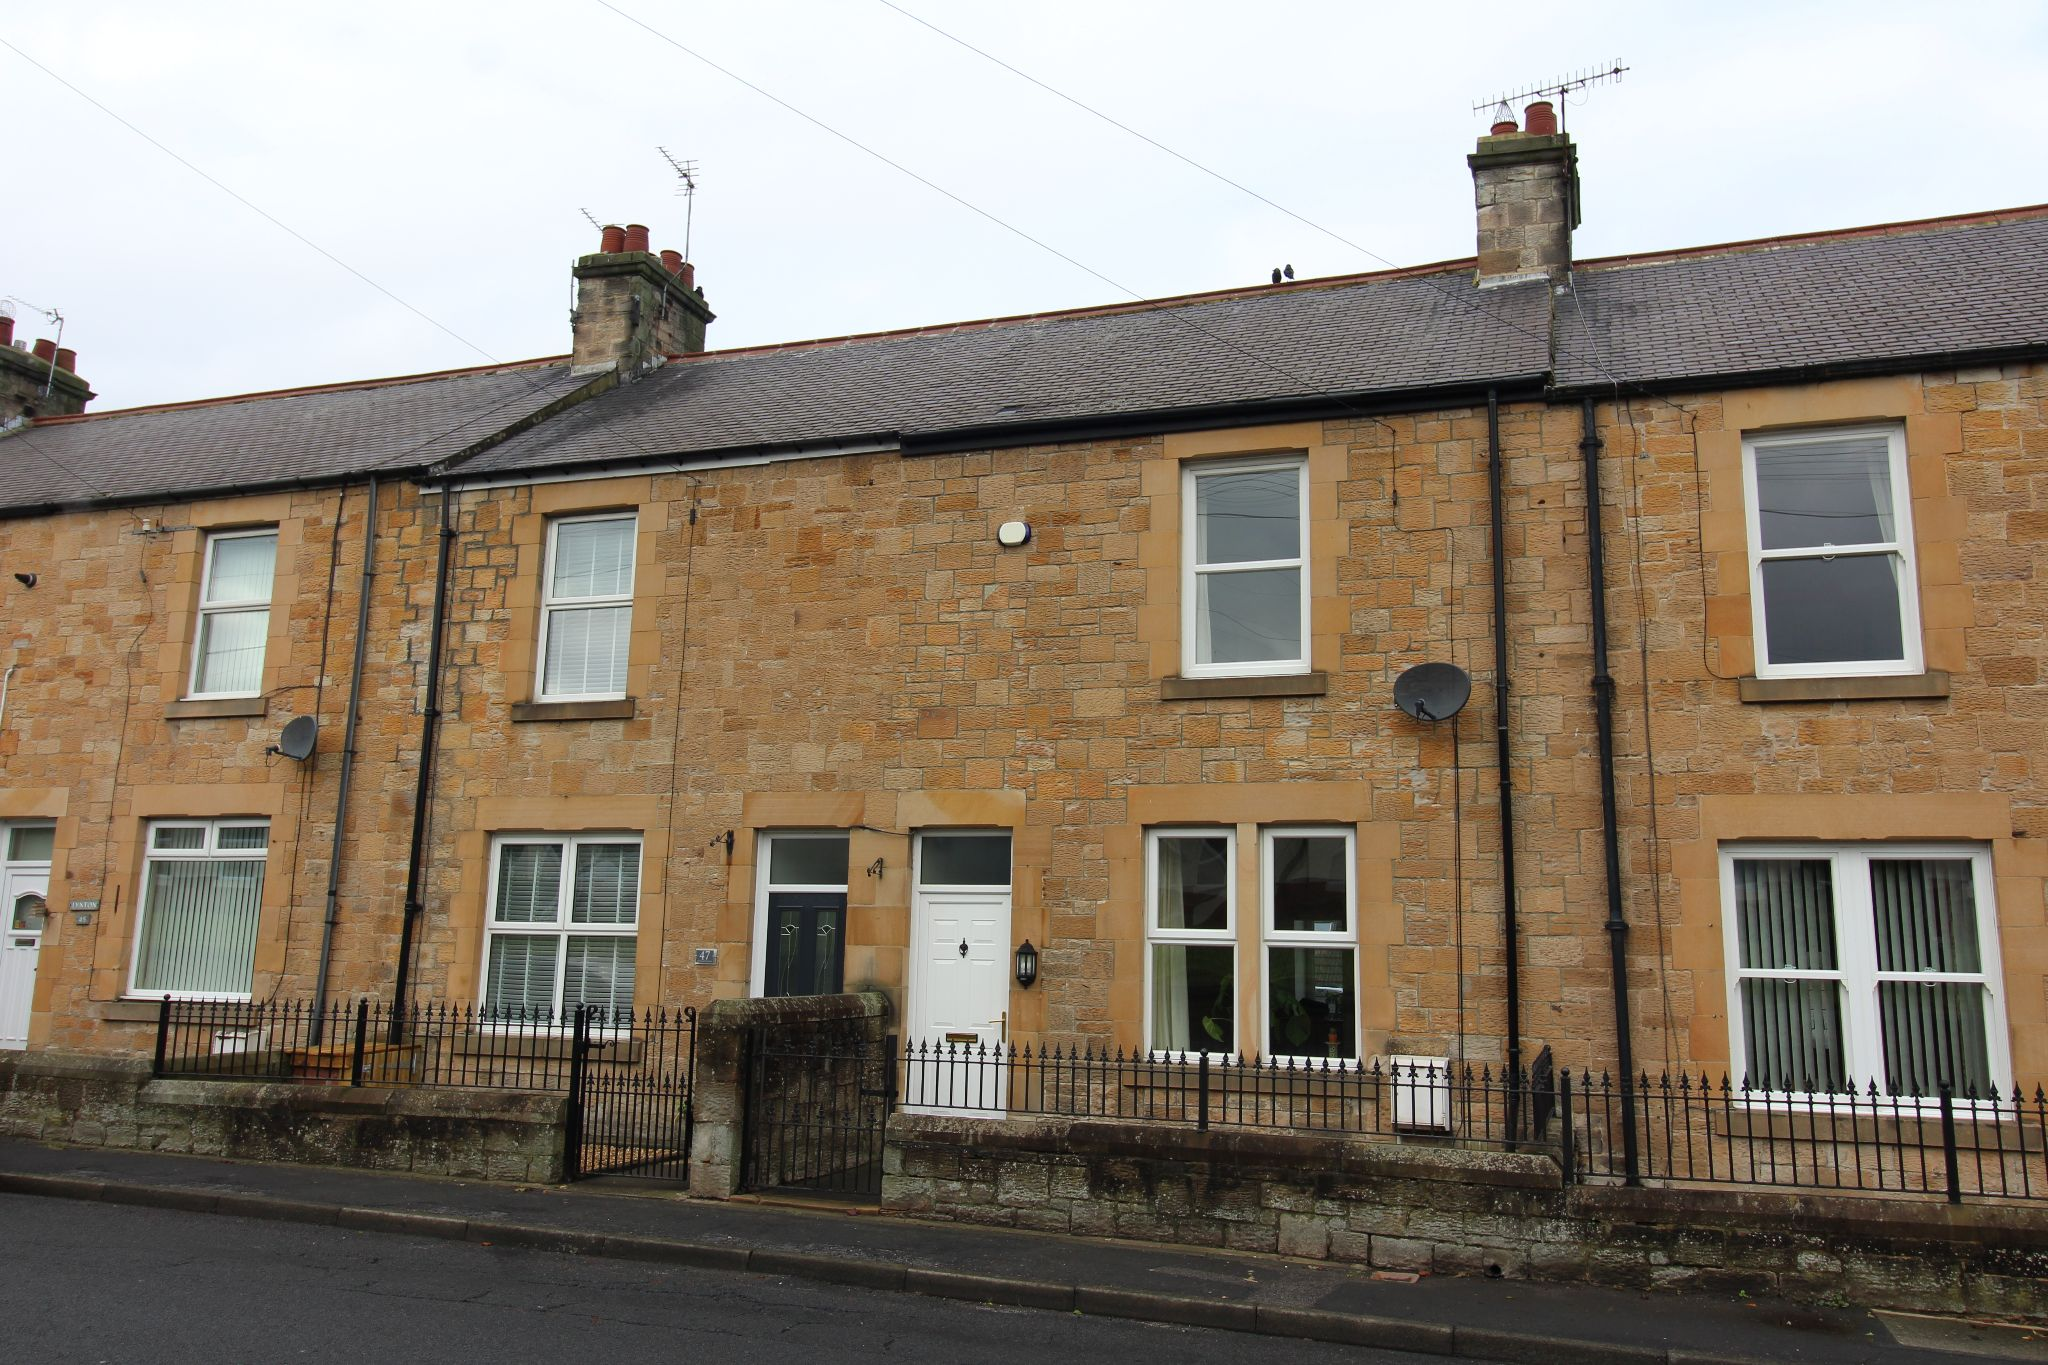 2 bedroom mid terraced house To Let in Consett - Photograph 1.